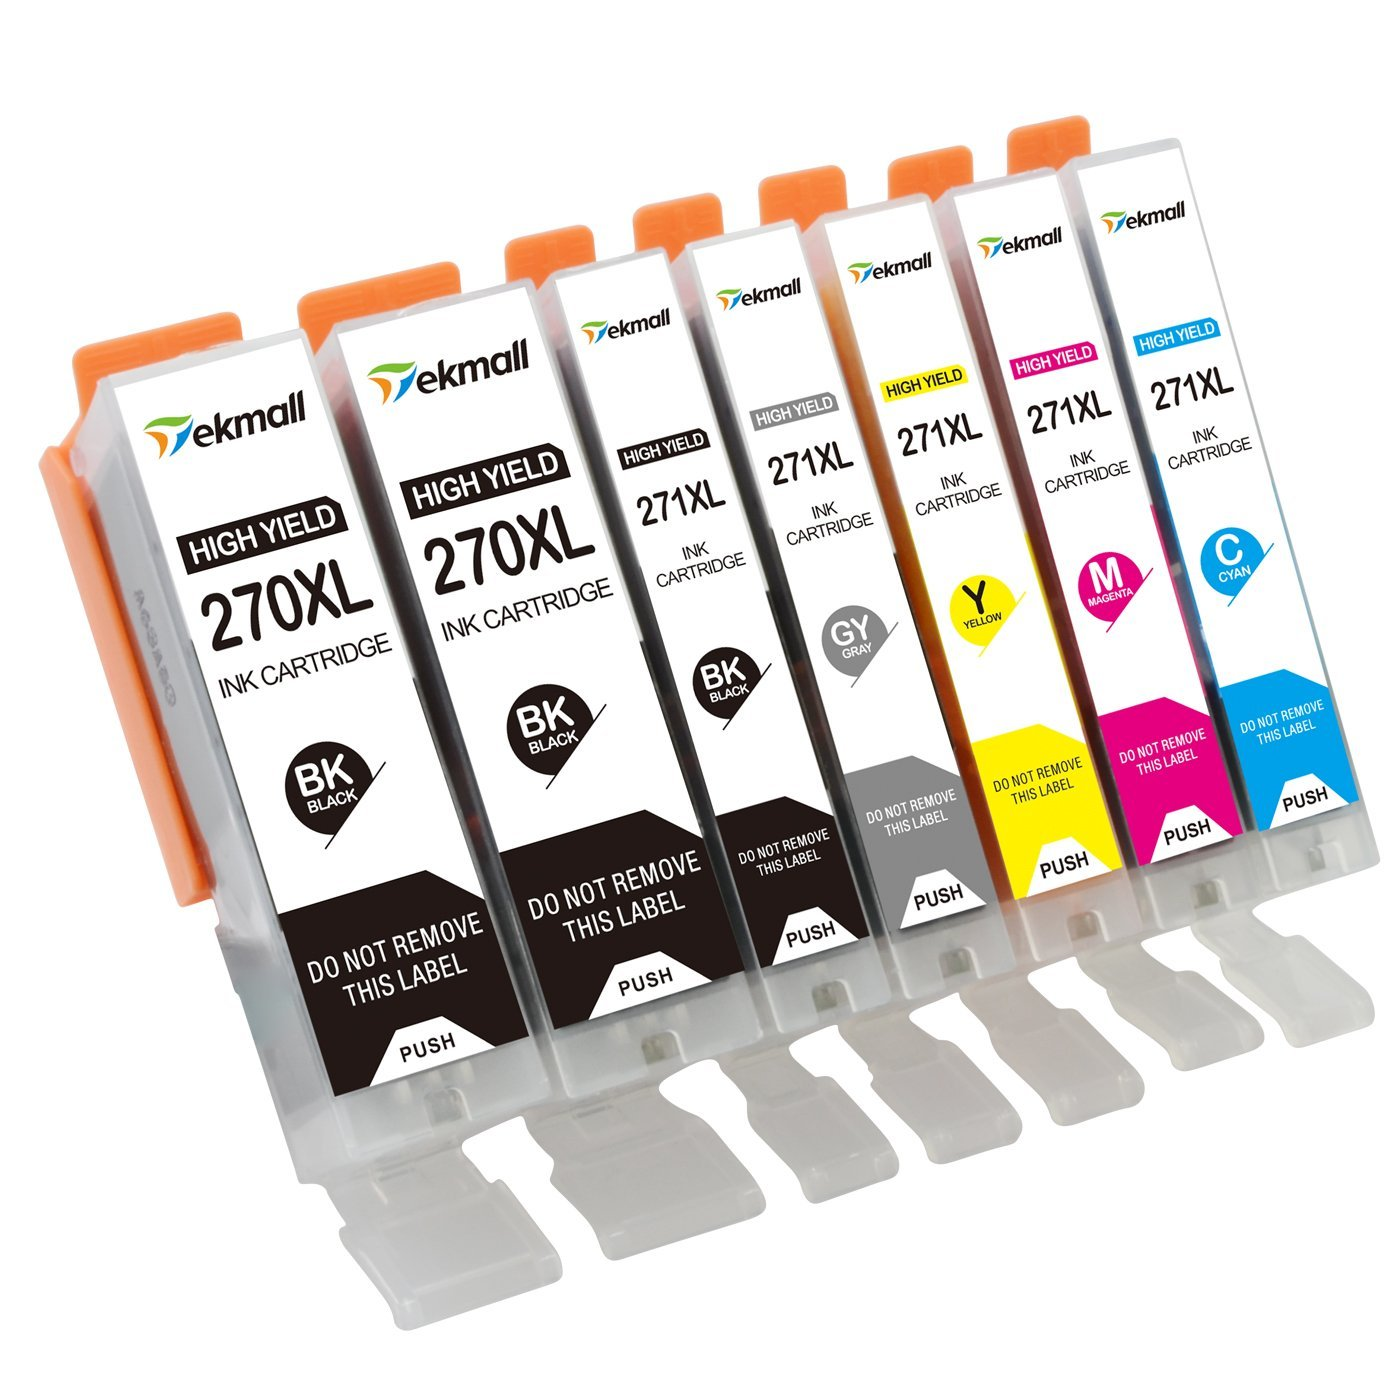 TekMall PGI-270XL CLI-271XL High Yield Ink Cartridges Replacement (2PGBK, BK, C, M, Y, GY), Compatible with PIXMA MG7720 Printer